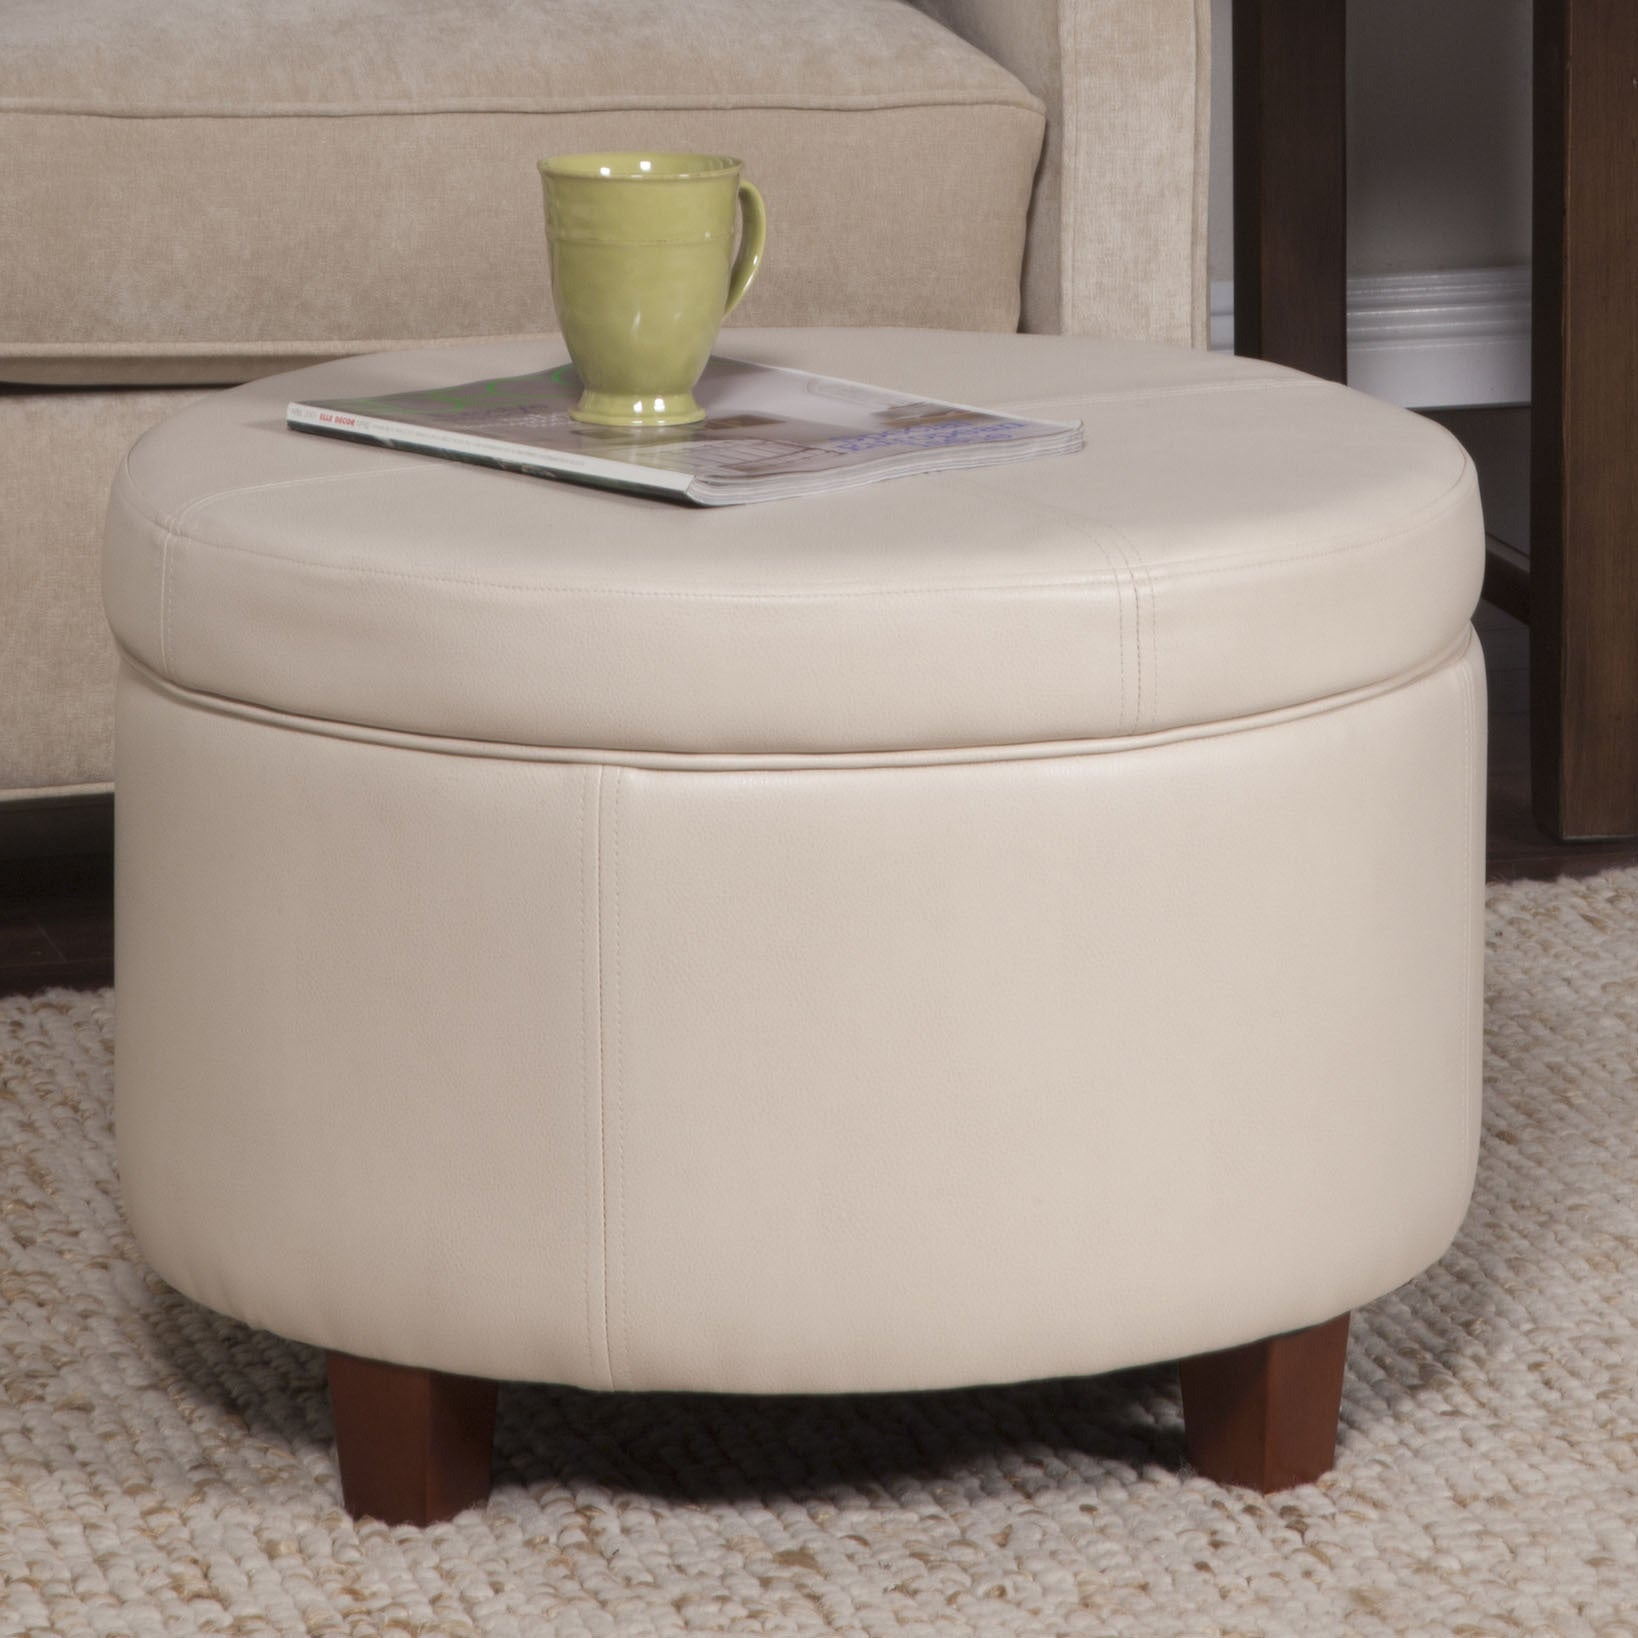 Large Round Ottoman : HomePop Large Ivory Leather Round Storage Ottoman - Overstock Shopping ...